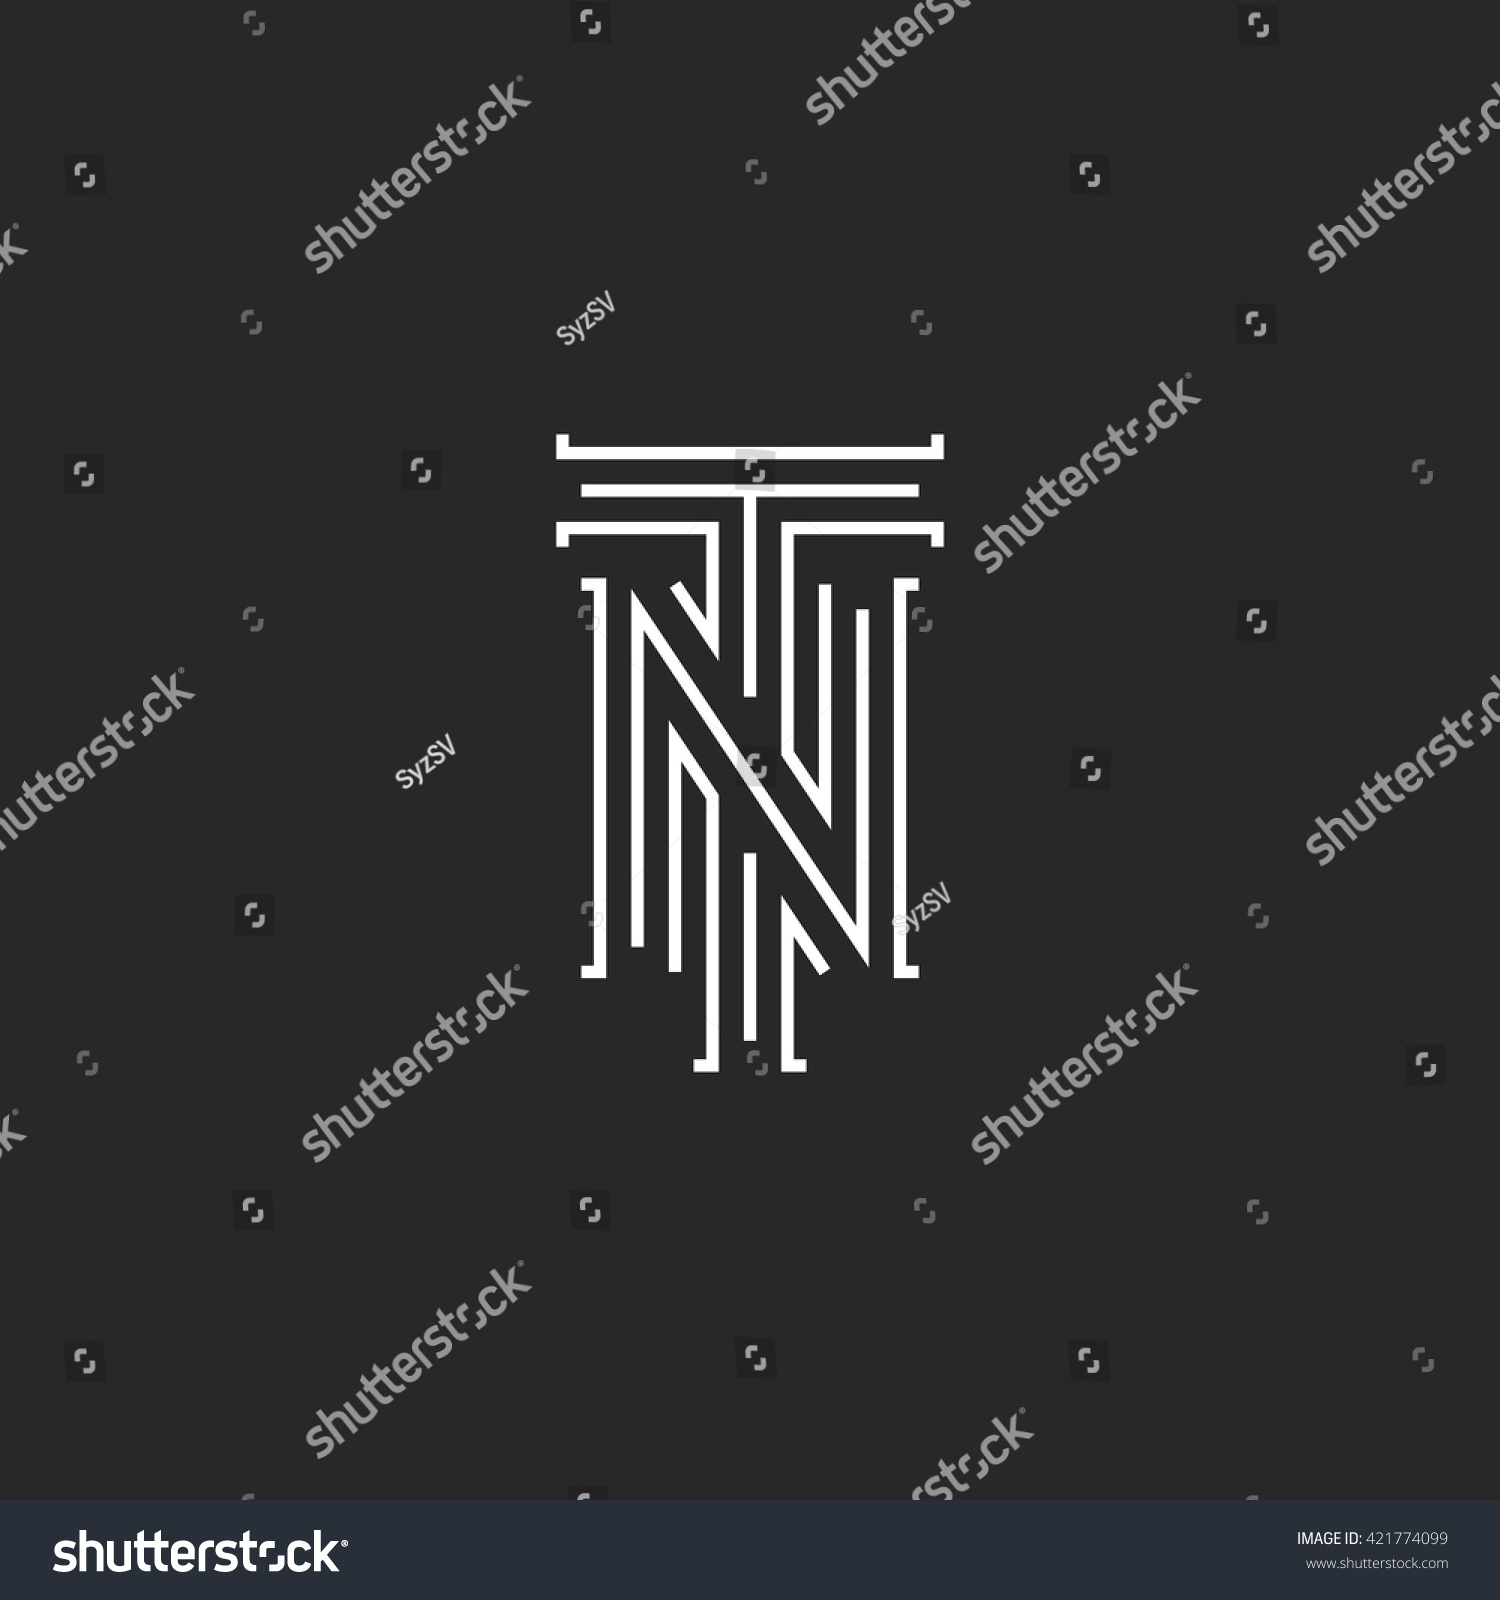 Initials Nt Letters Logo Hipster Monogram Stock Vector Royalty Free